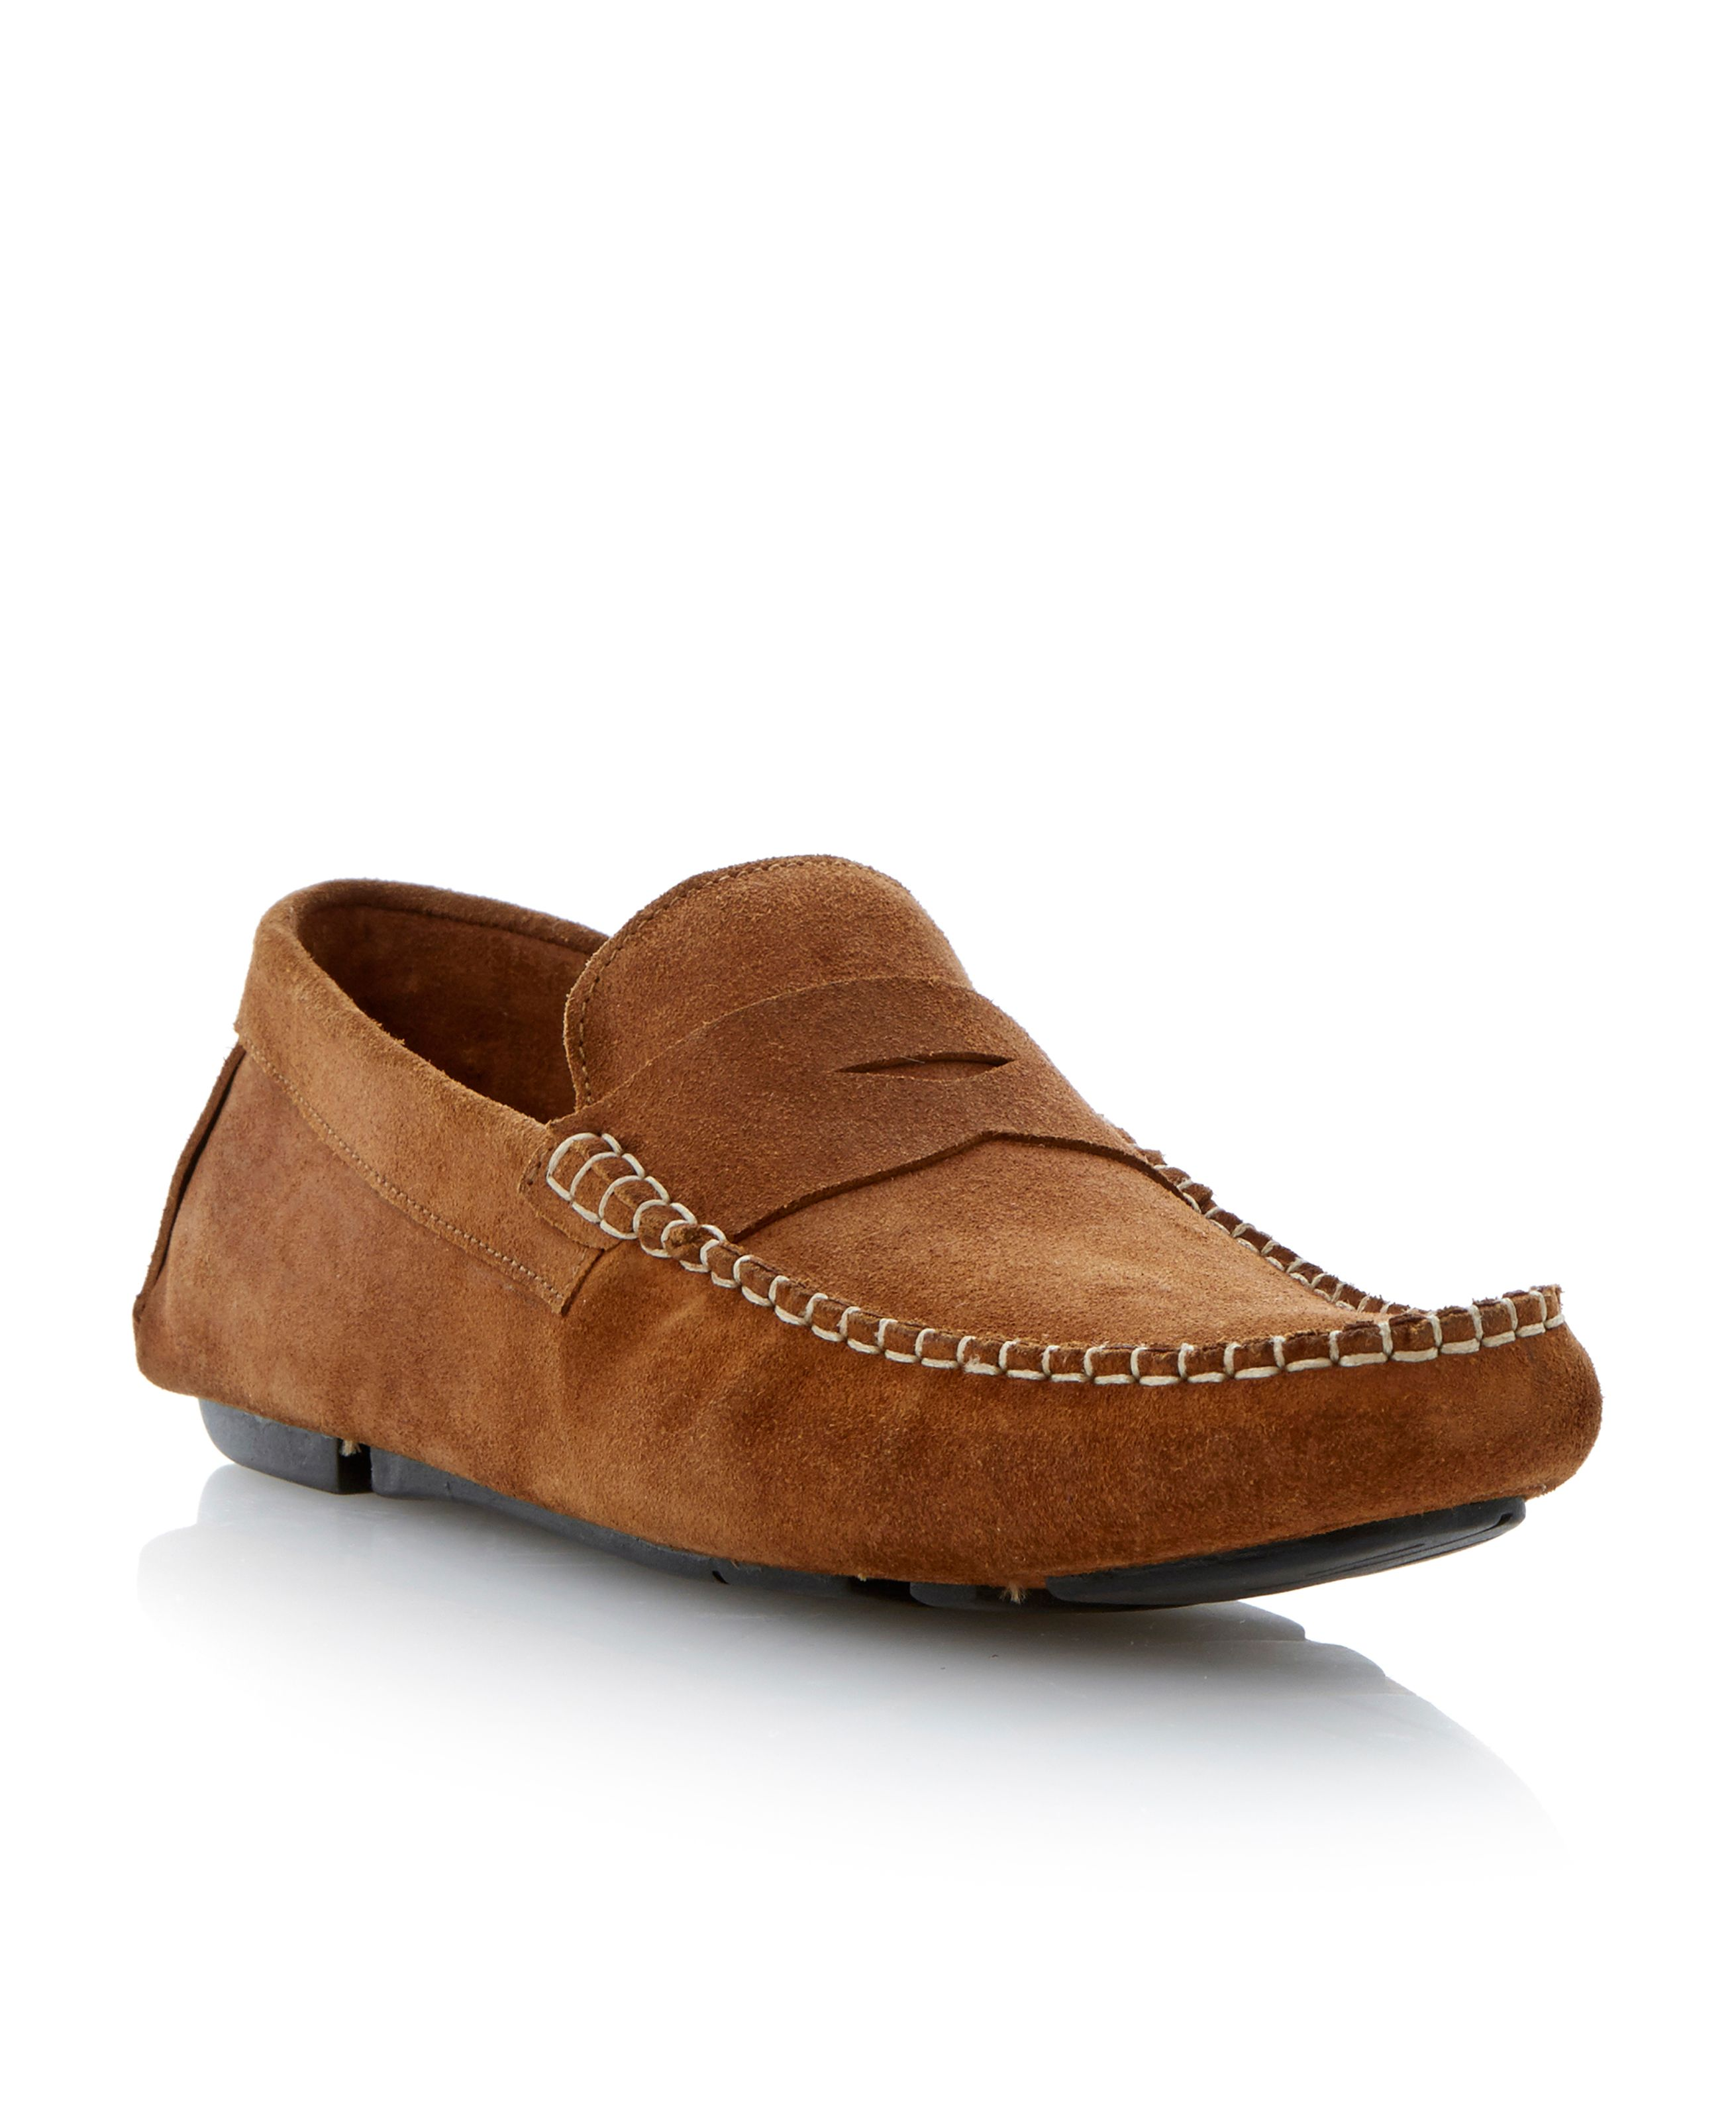 Benz 2 suede saddle driver shoes